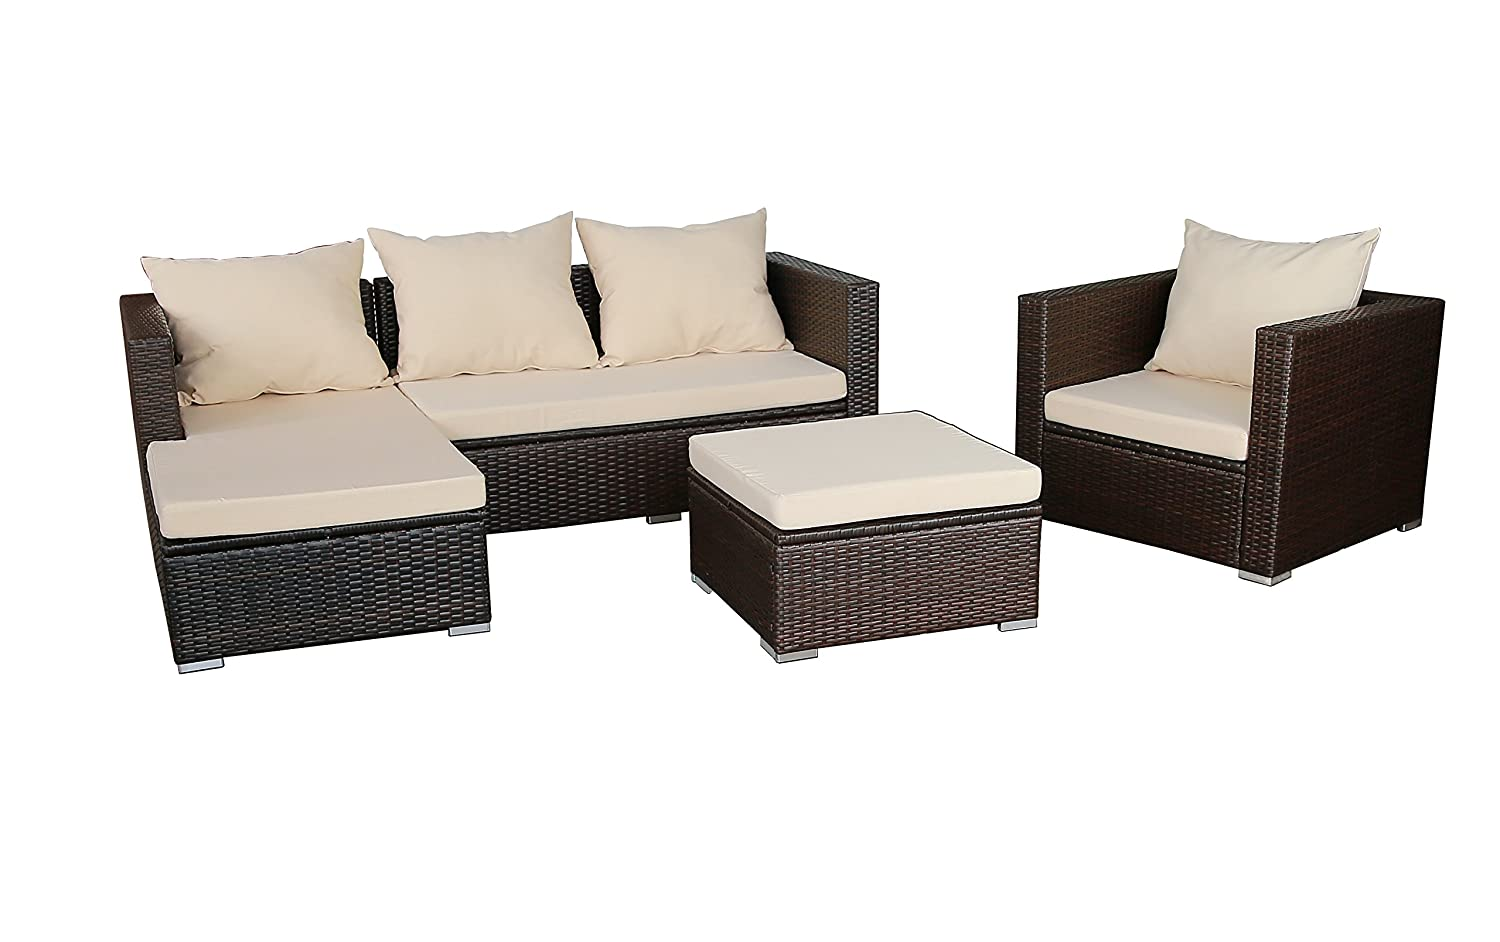 gartenfreude gartenm bel lounge gartenset garnitur sitzgruppe polyrattan 12 teilig. Black Bedroom Furniture Sets. Home Design Ideas